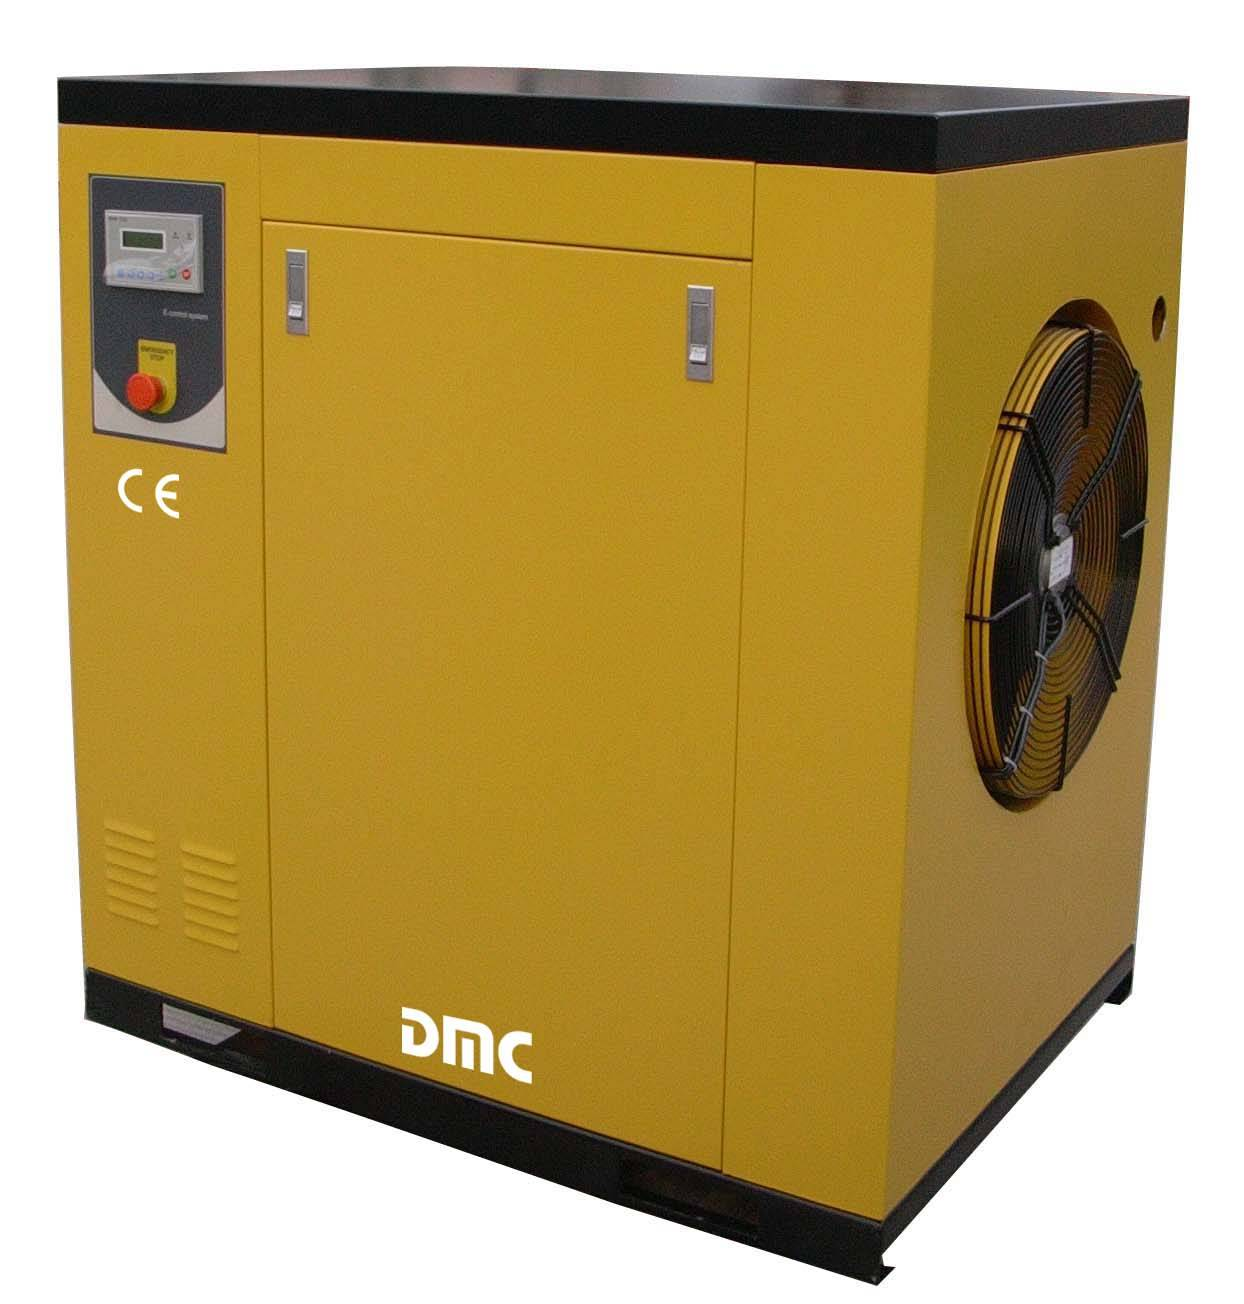 15hp screw compressor with build-in dryer